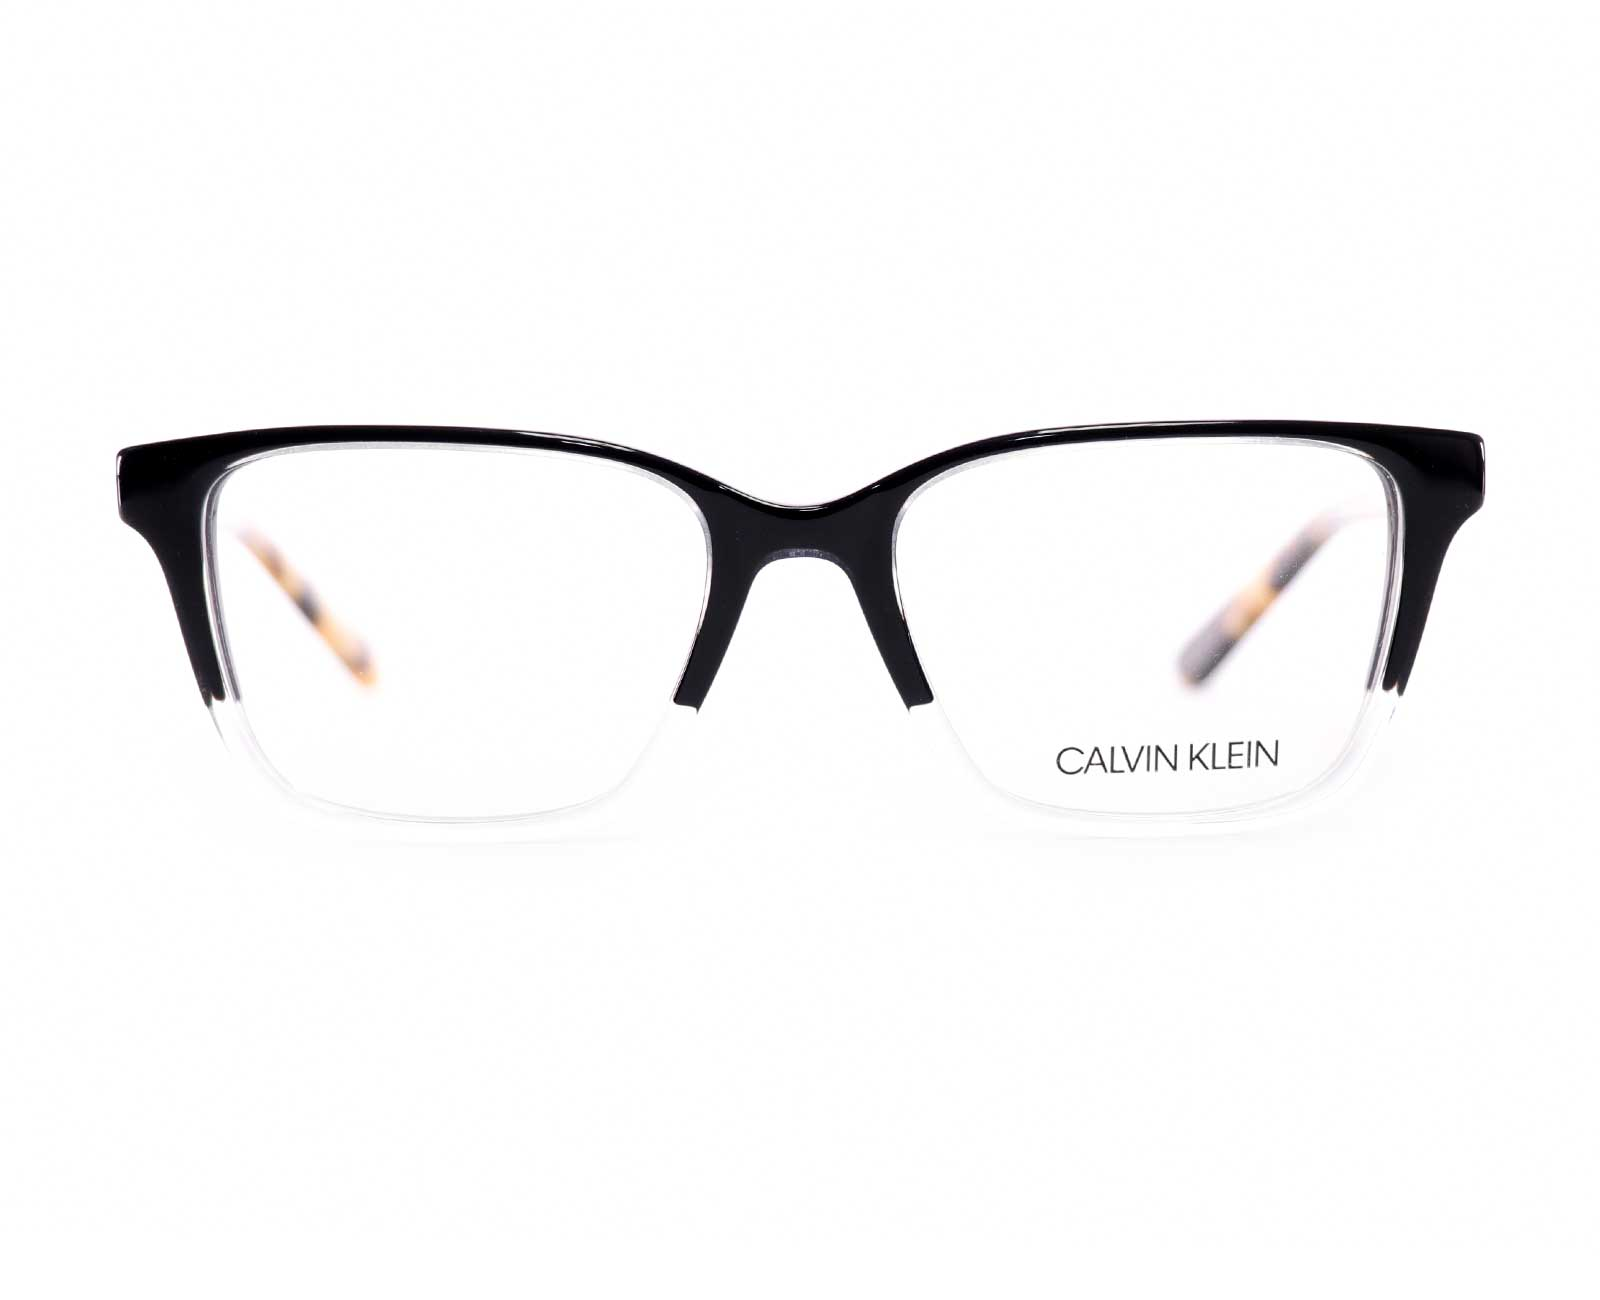 Calvin Klein CK19506 in Crystal/Black